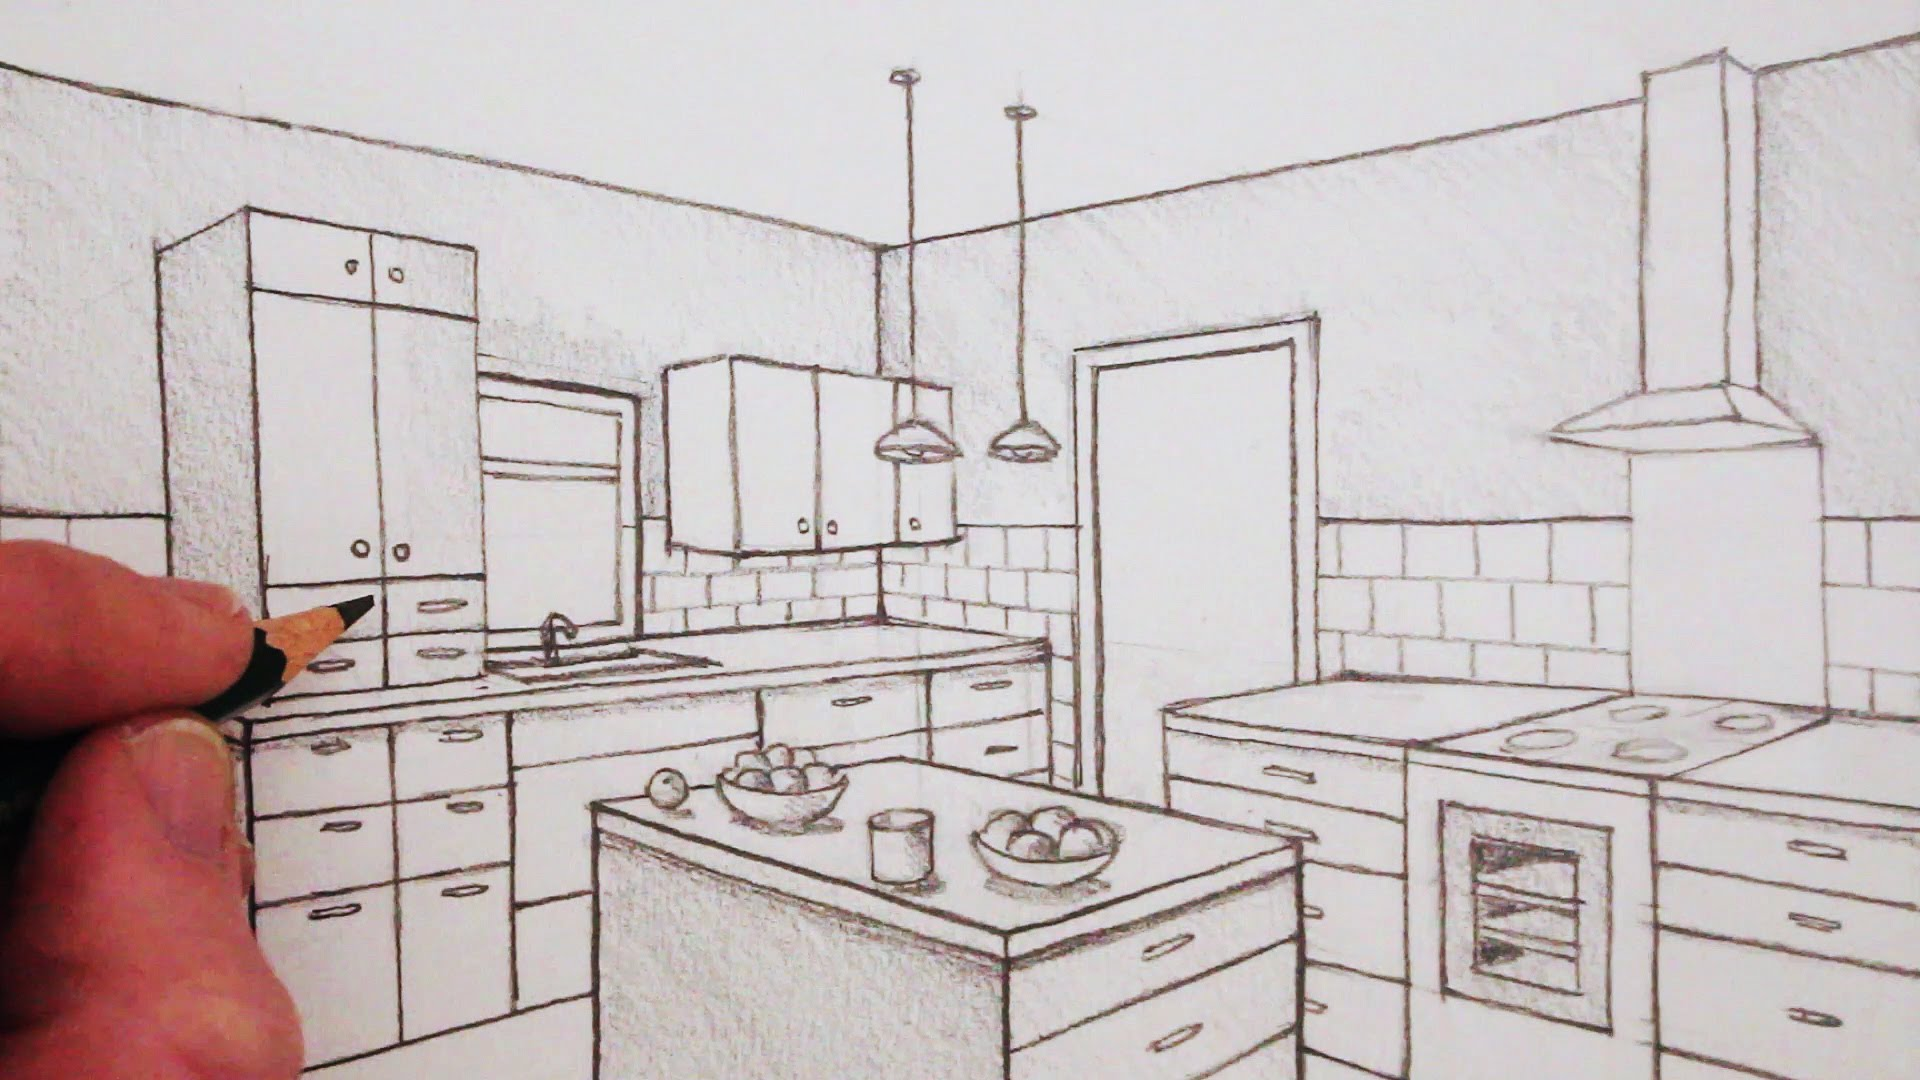 Drawn room kitchen room Time Two Point Draw in